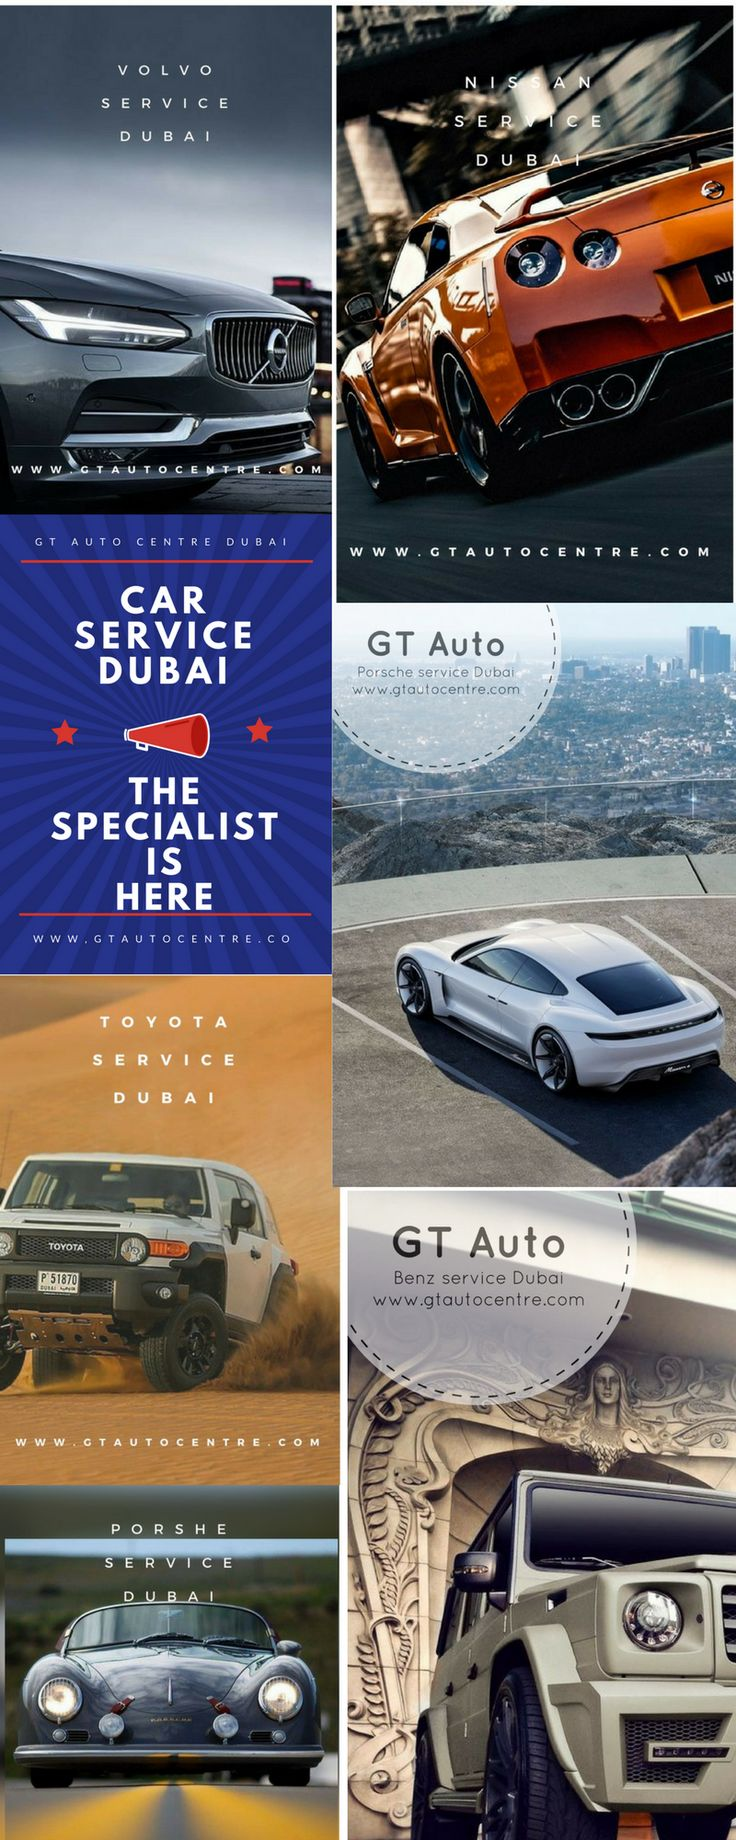 car service in dubai for your volvo porsche audi service range rover toyota and other luxury cars in dubai gt auto centre dubai uae ac